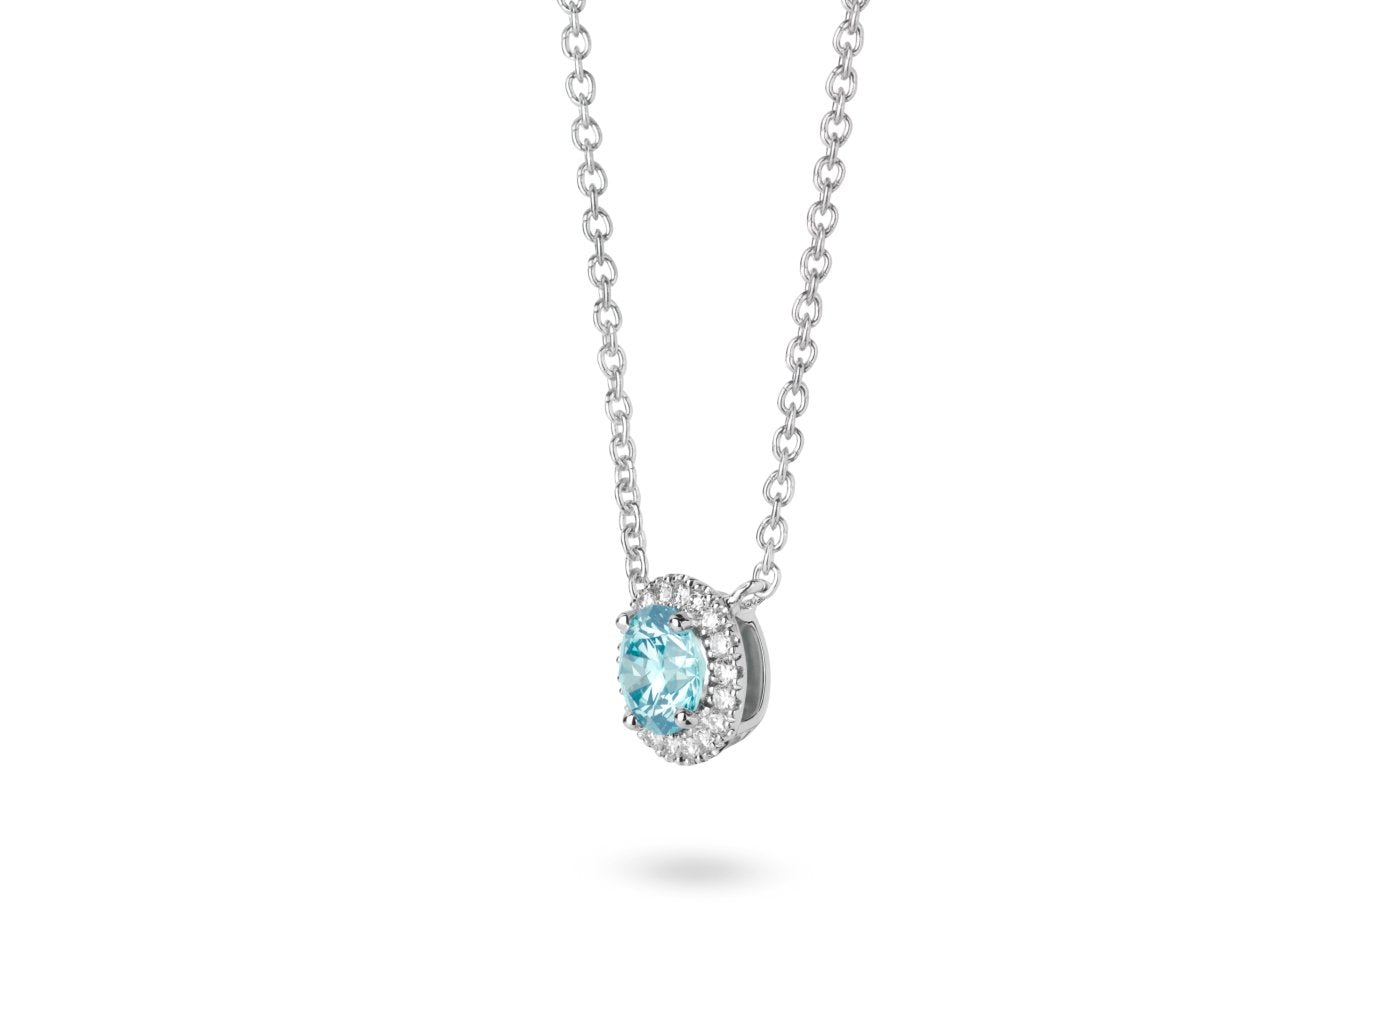 Side view of Halo 3/4 carat pendant with blue and white diamonds